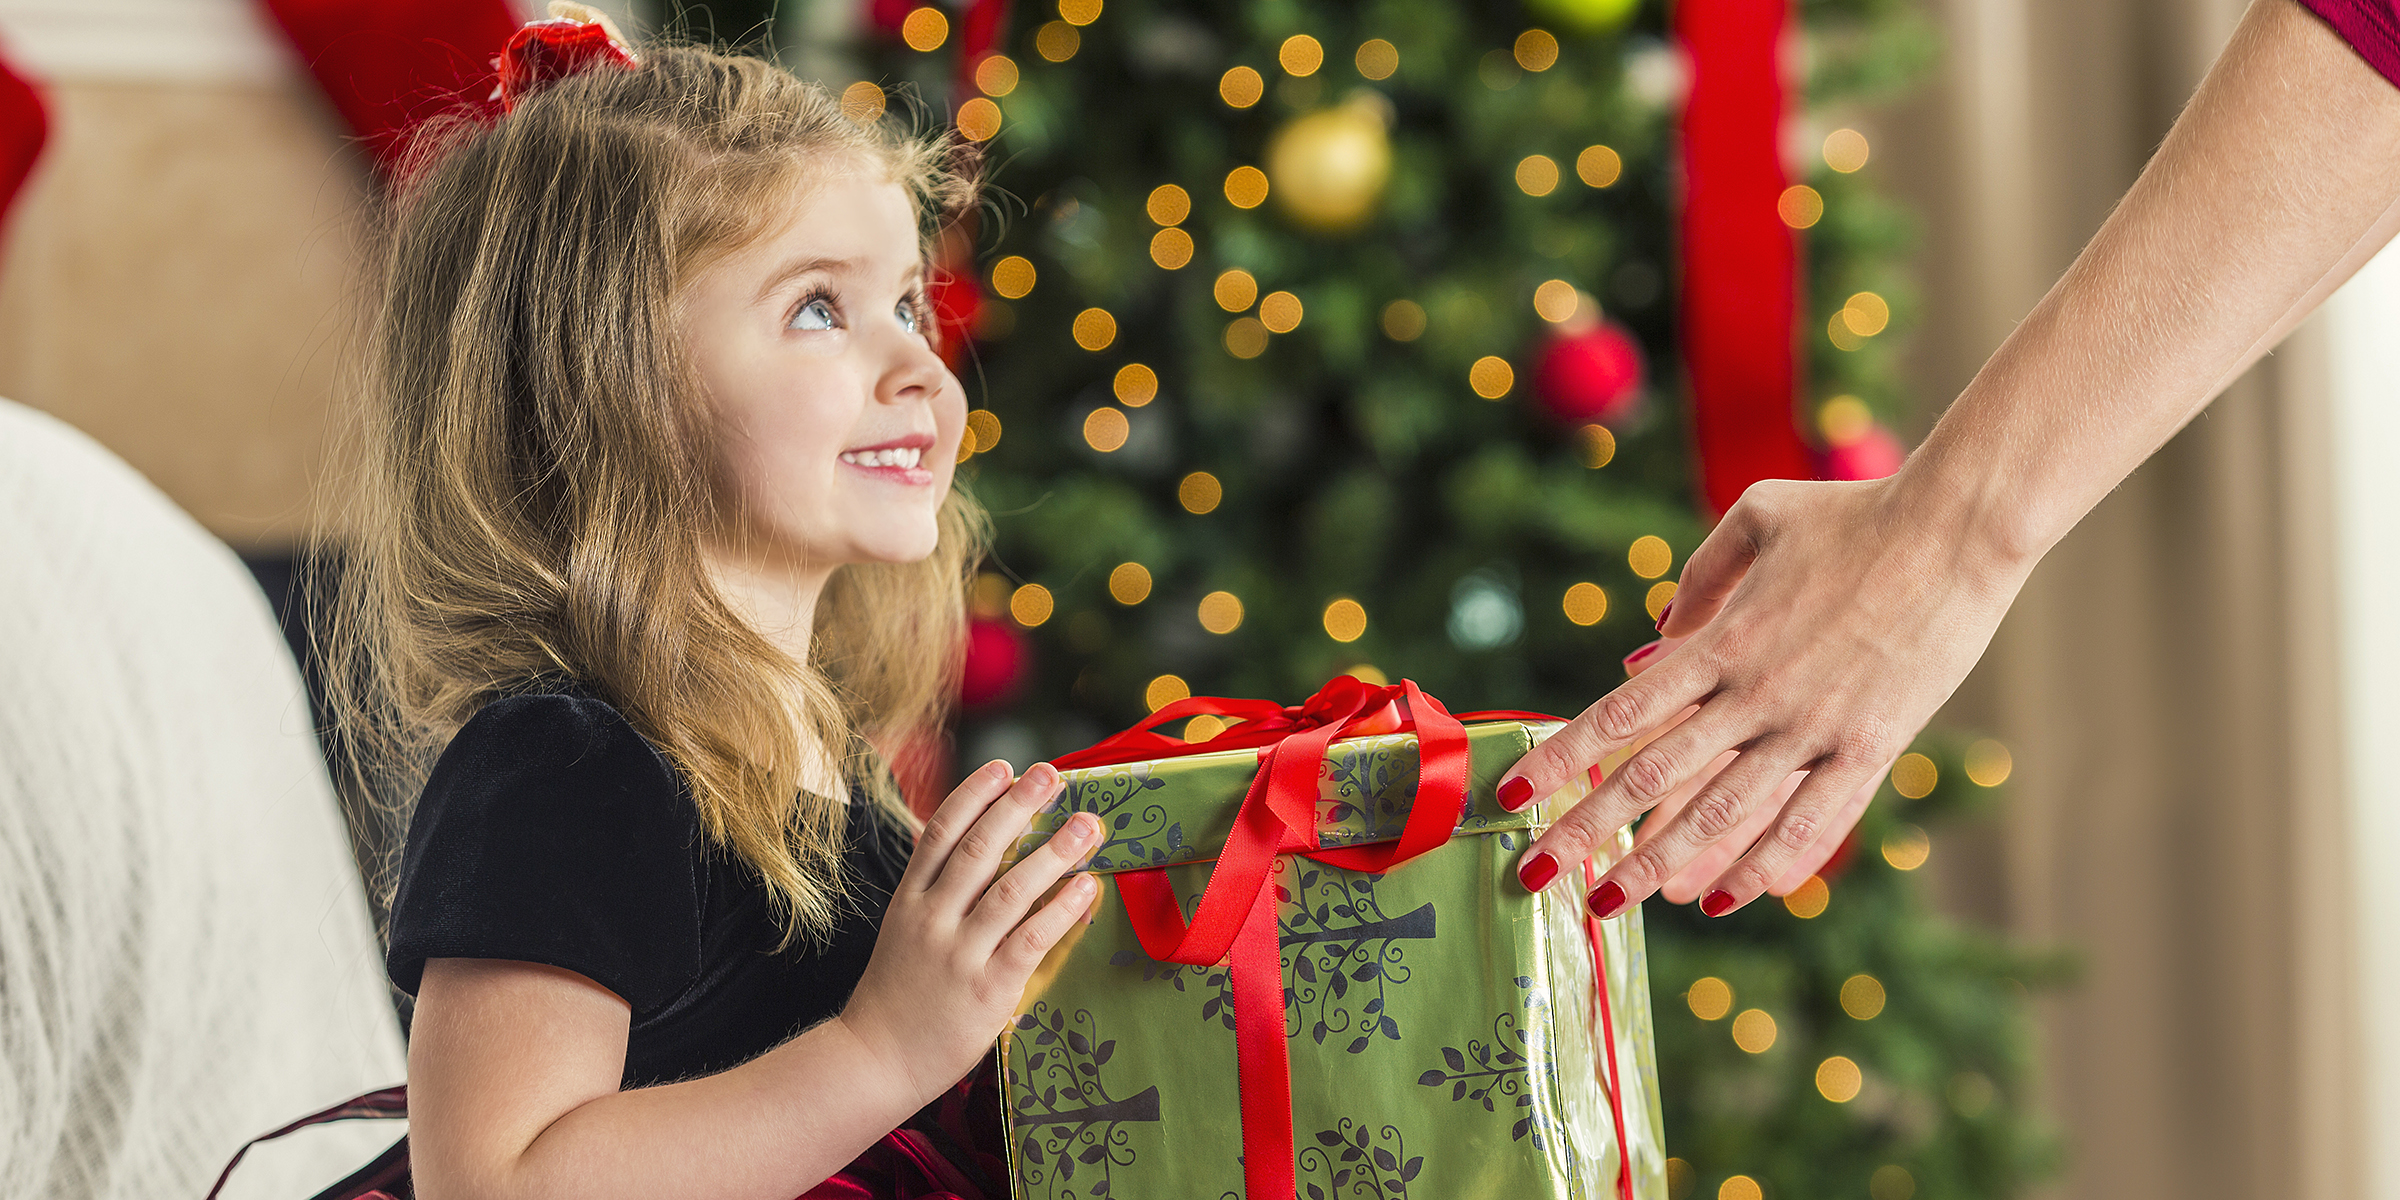 Best gifts for 5-year-olds 2018: Games and toys for 5-year-old boys ...